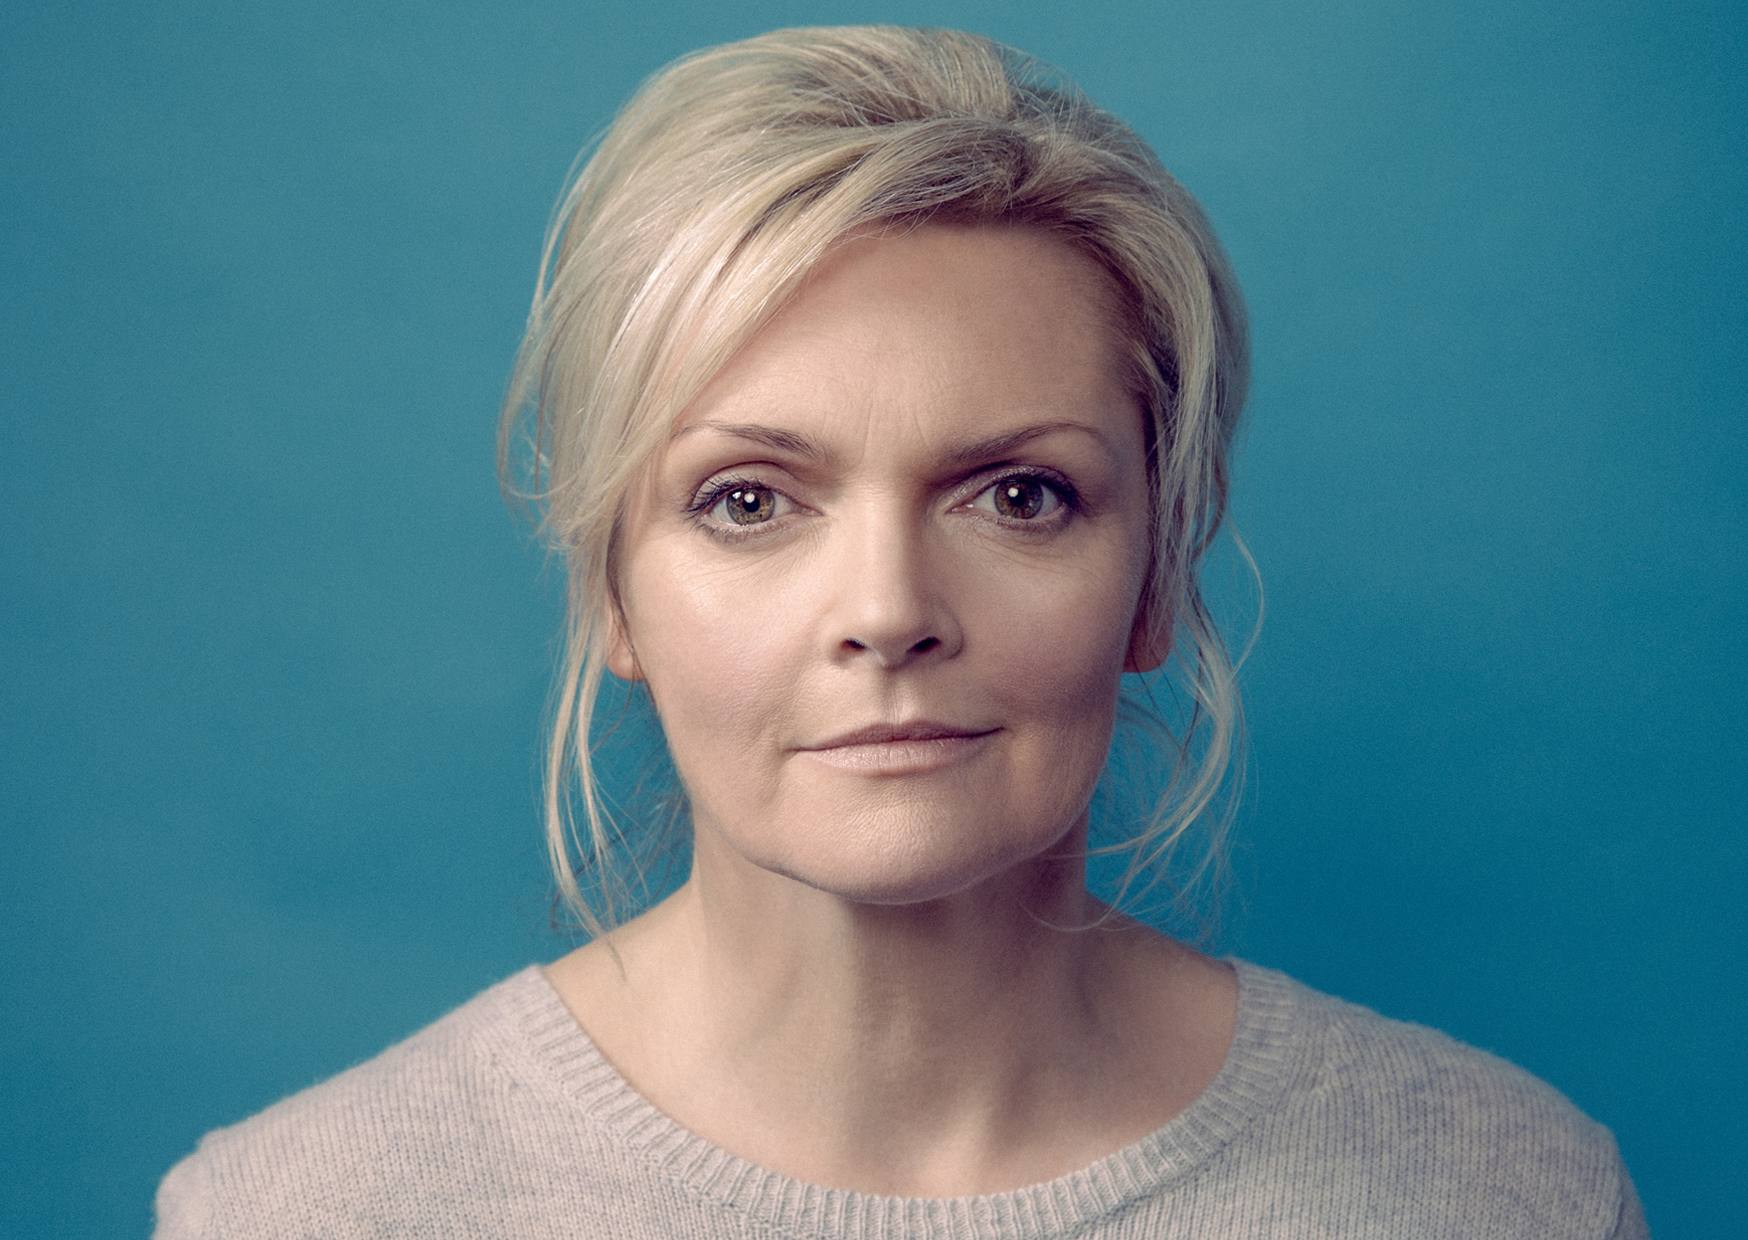 Sharon Small plays the lead role in dementia drama Still Alice at the West Yorkshire Playhouse in Leeds